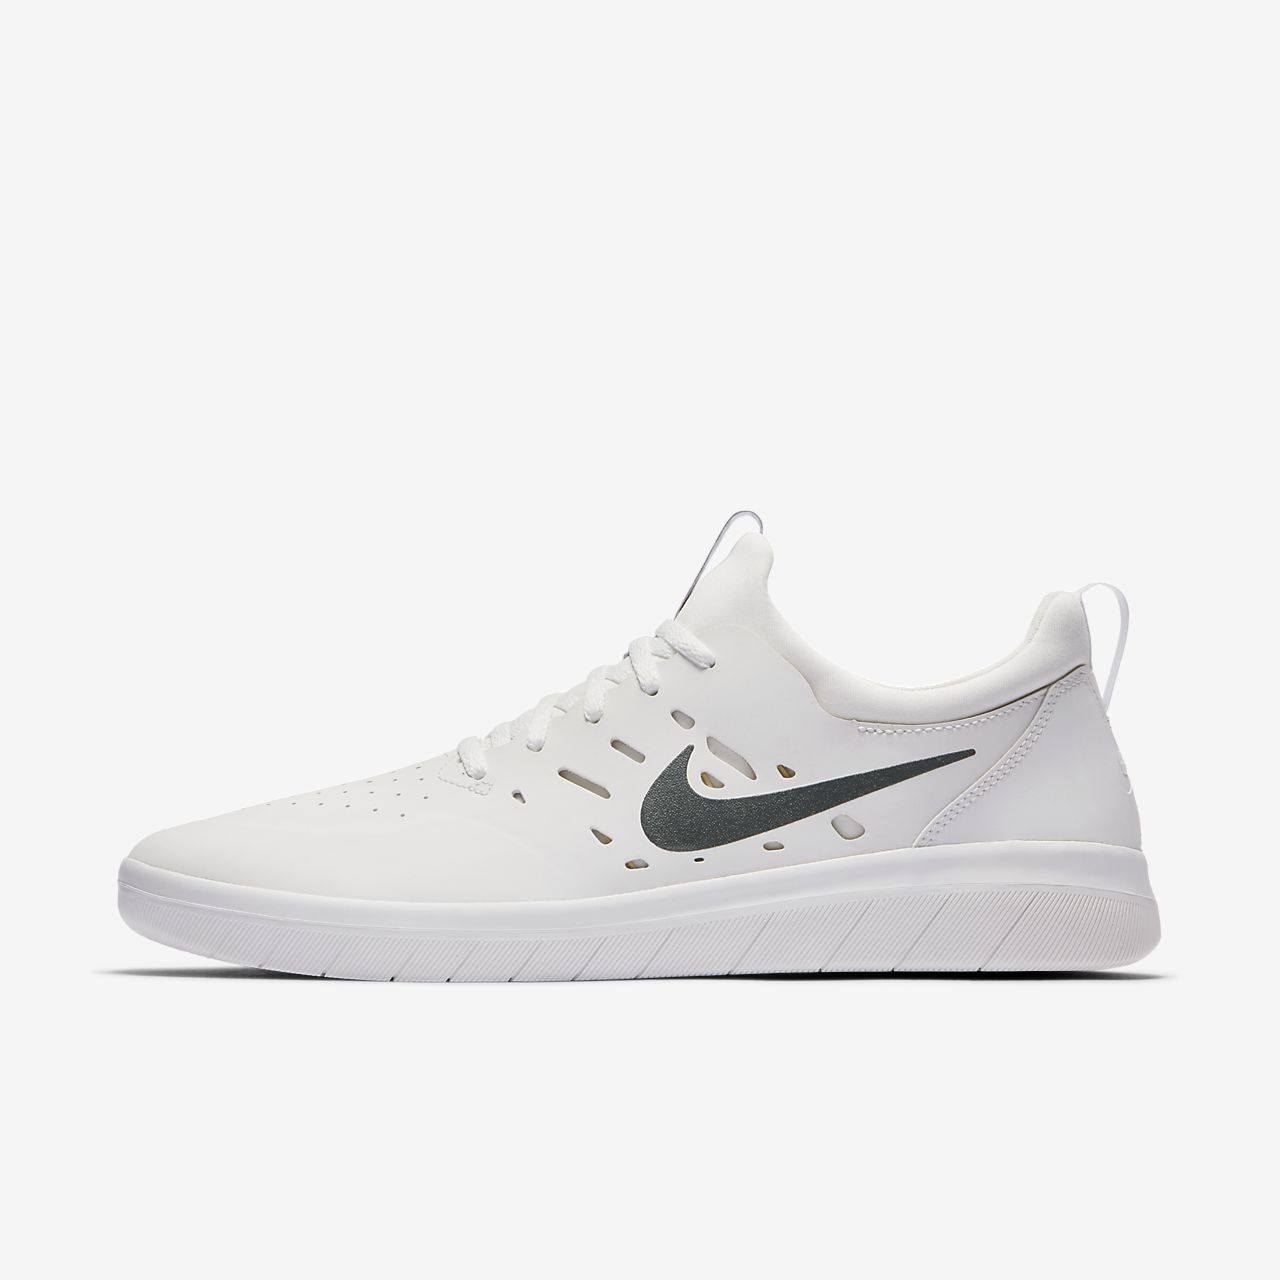 cheap for discount 7d802 ce17b Skate Shoe. Nike SB Nyjah Free